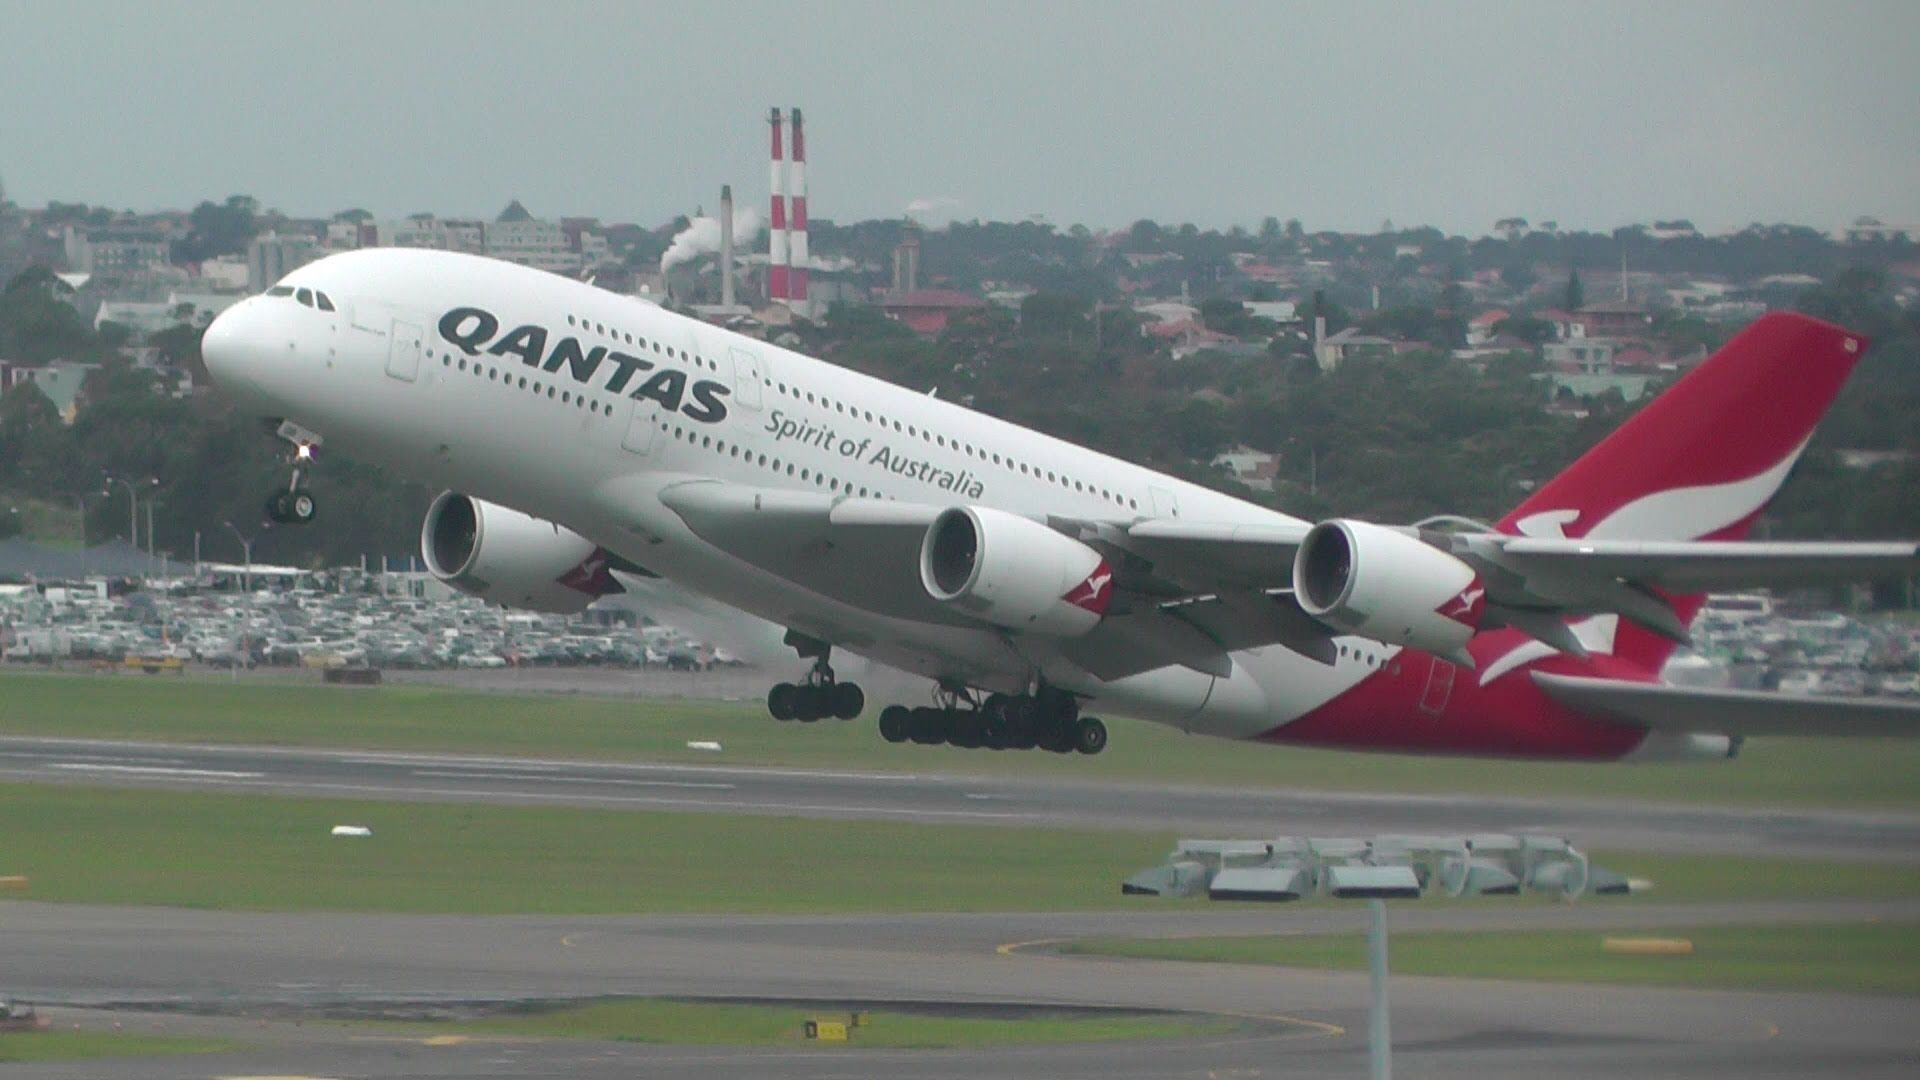 Qantas A380 Take Off From Sydney Airport | Airplane Porn